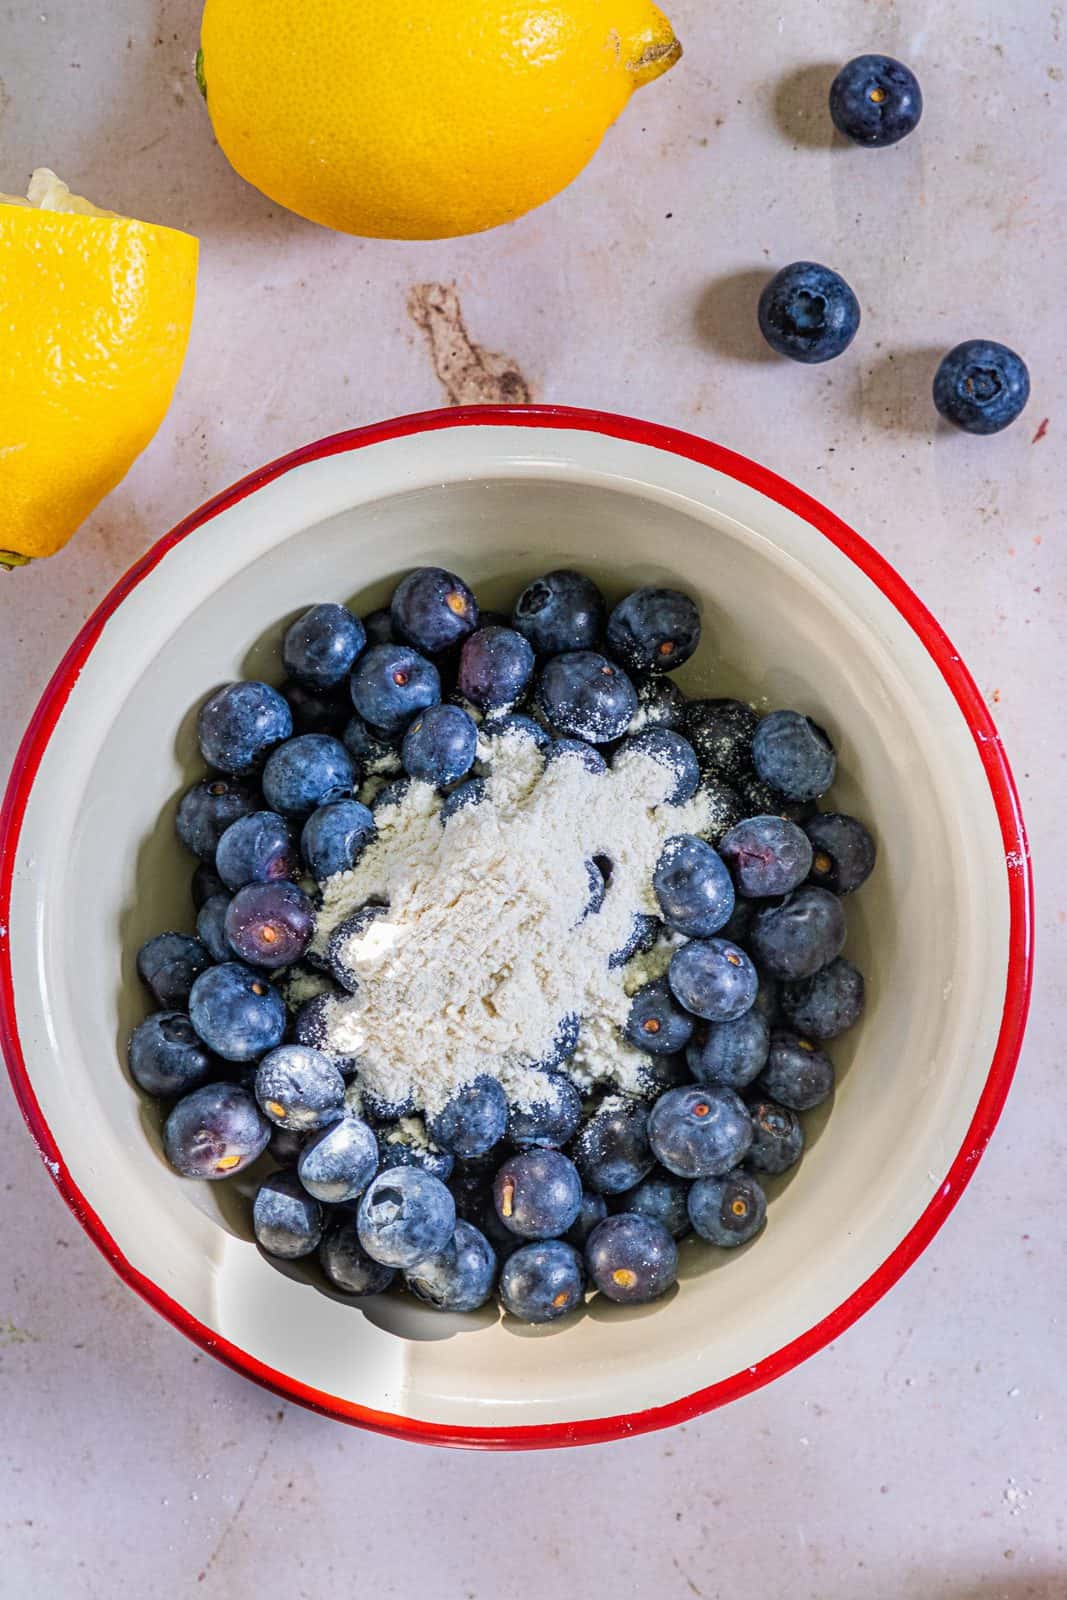 Flour added to blueberries in a white bowl.